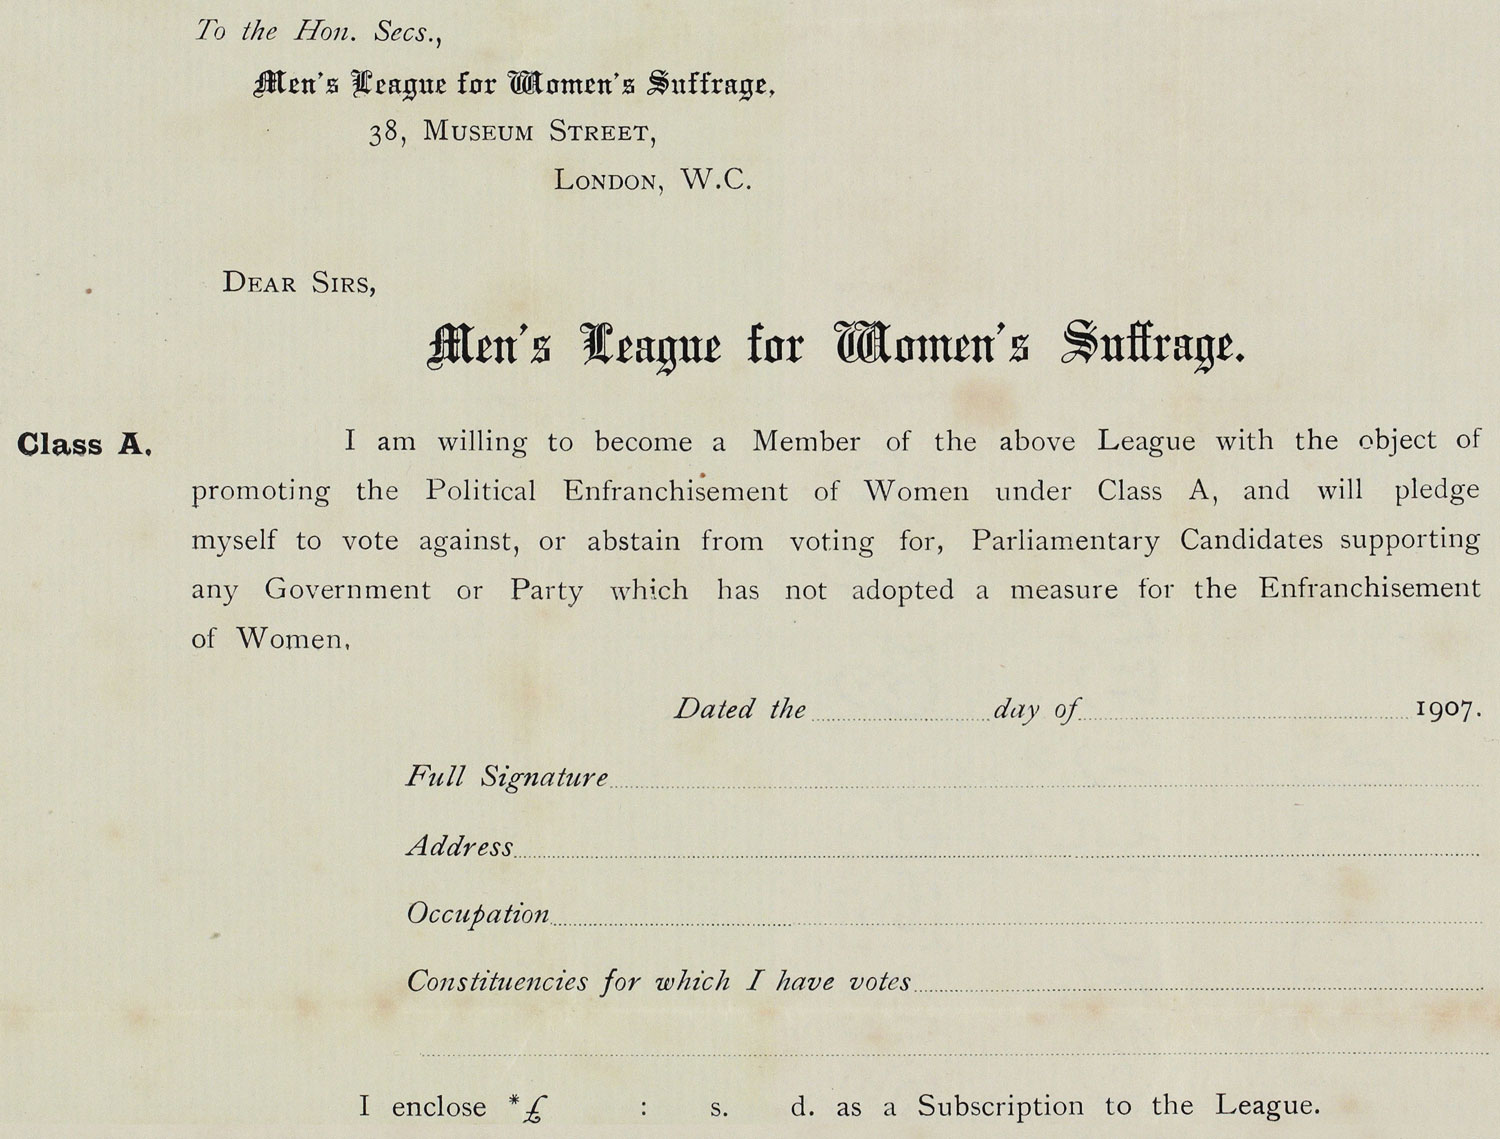 Printed membership form, Men's League for Women's Suffrage